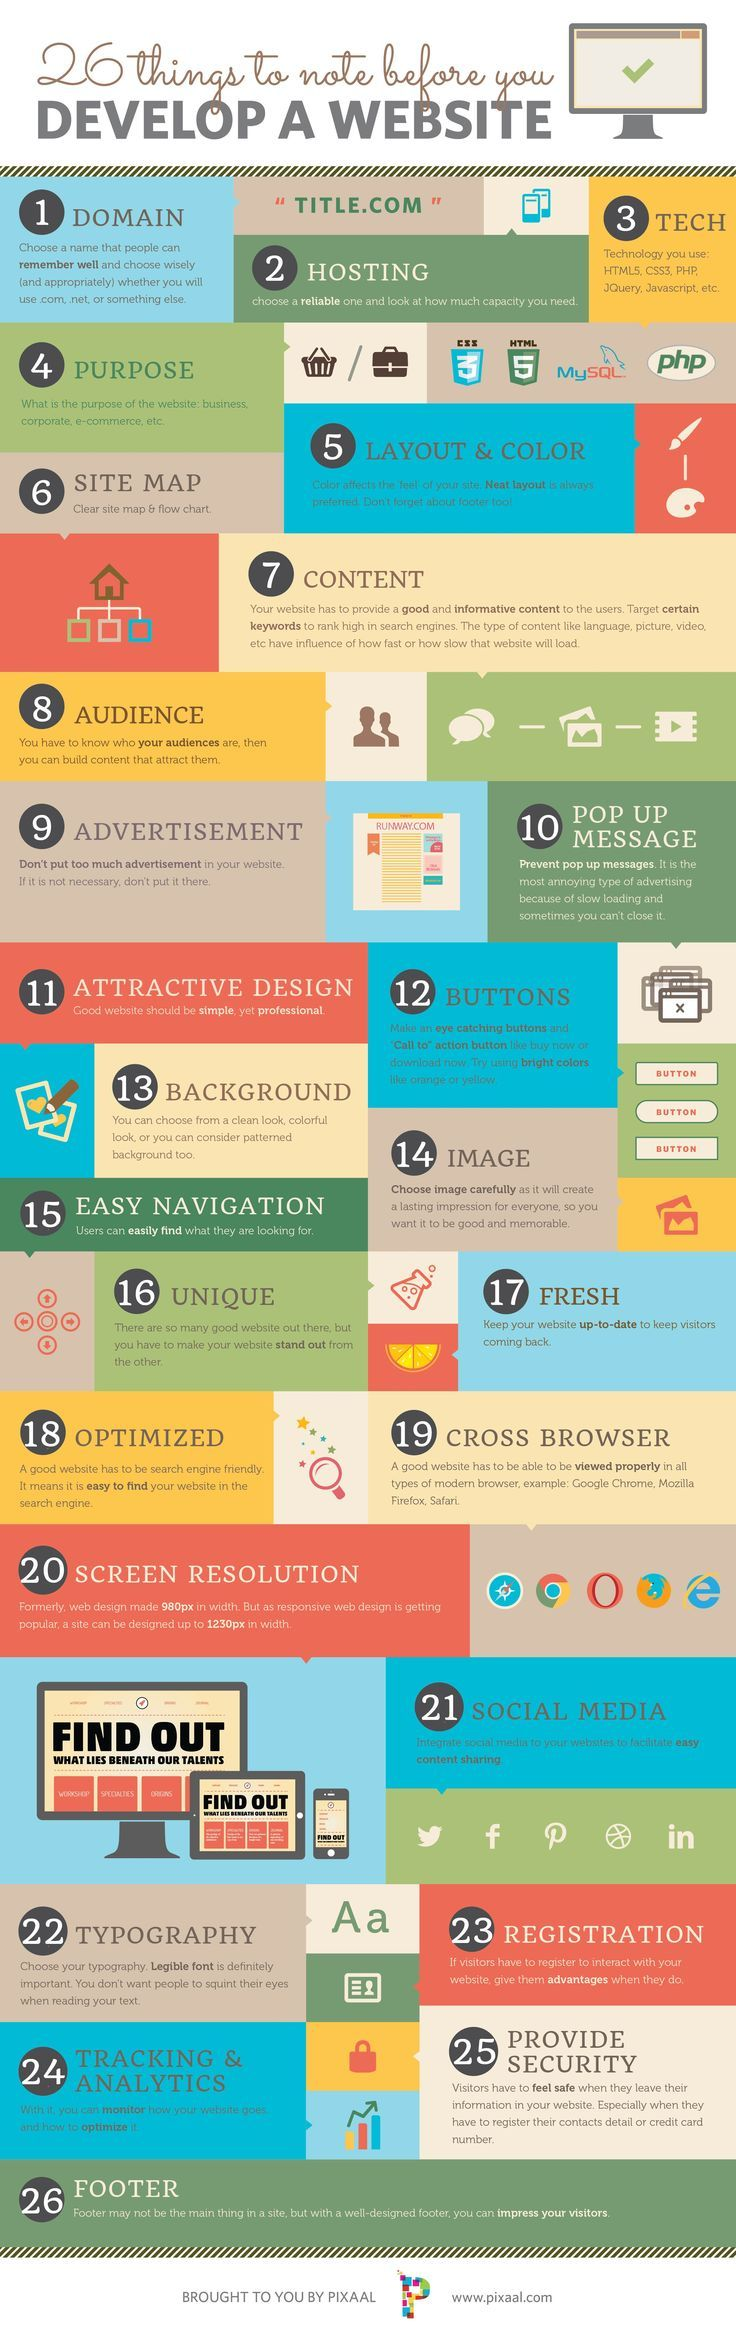 "26 Things You Should Know Before You Develop A Website <a href=""http://www.digitalinformationworld.com/2013/07/26-things-you-should-know-before-you.html"" rel=""nofollow"" target=""_blank"">www.digitalinform...</a>"